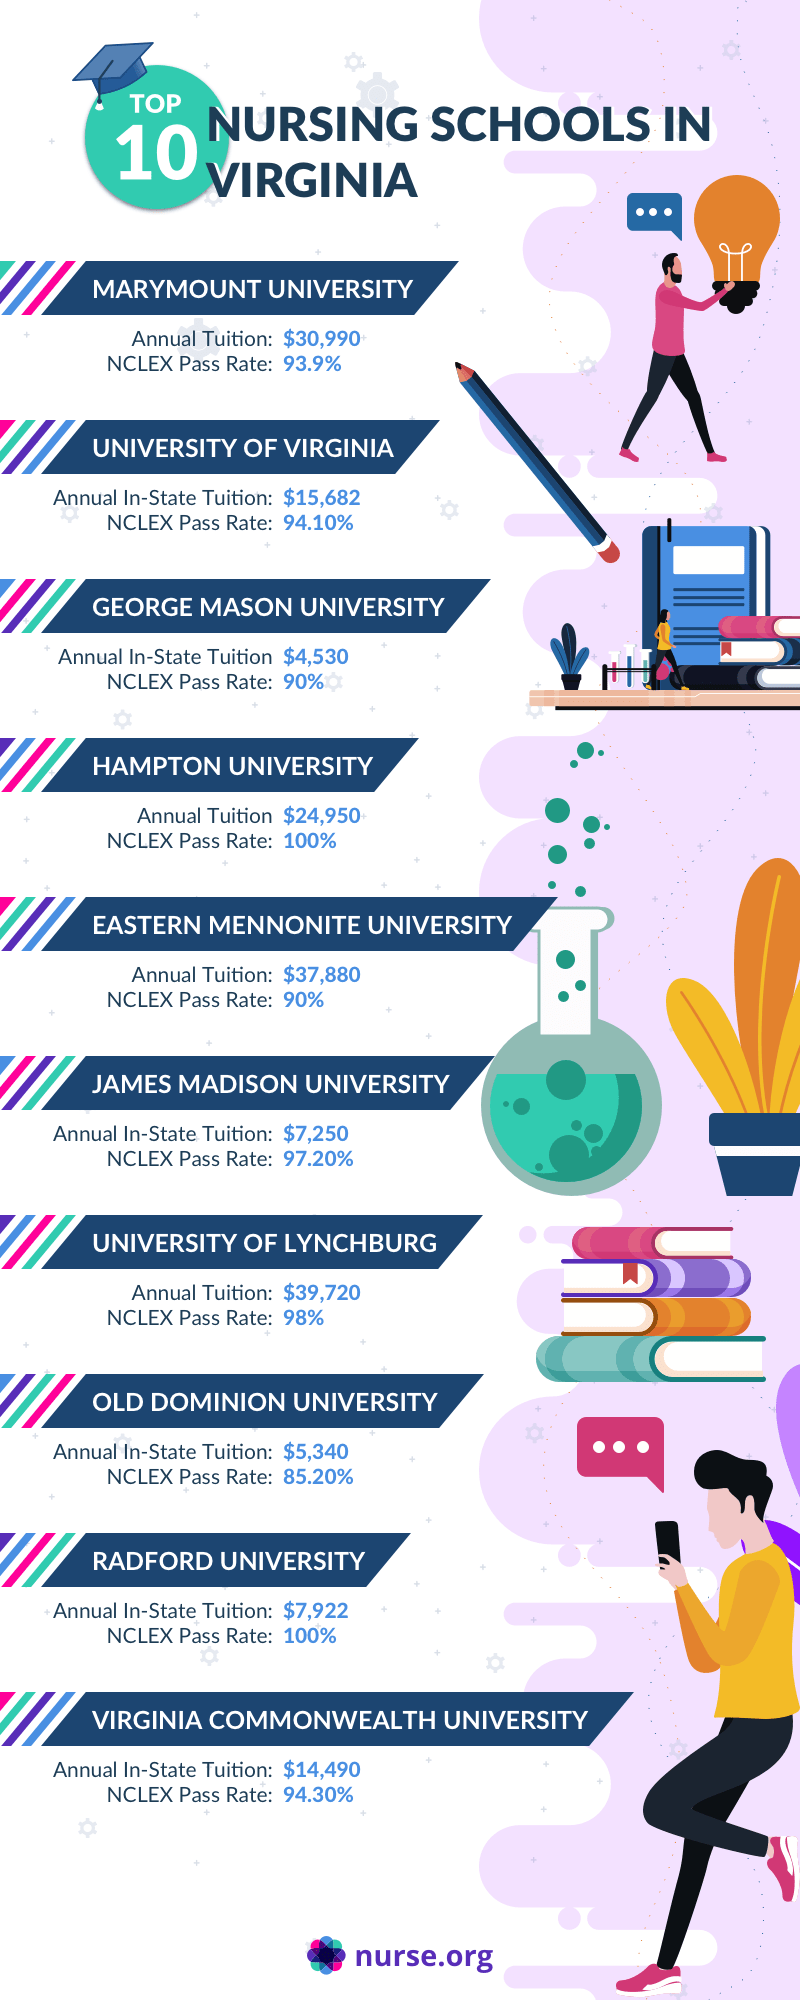 Infographic comparing the top nursing schools in Virginia